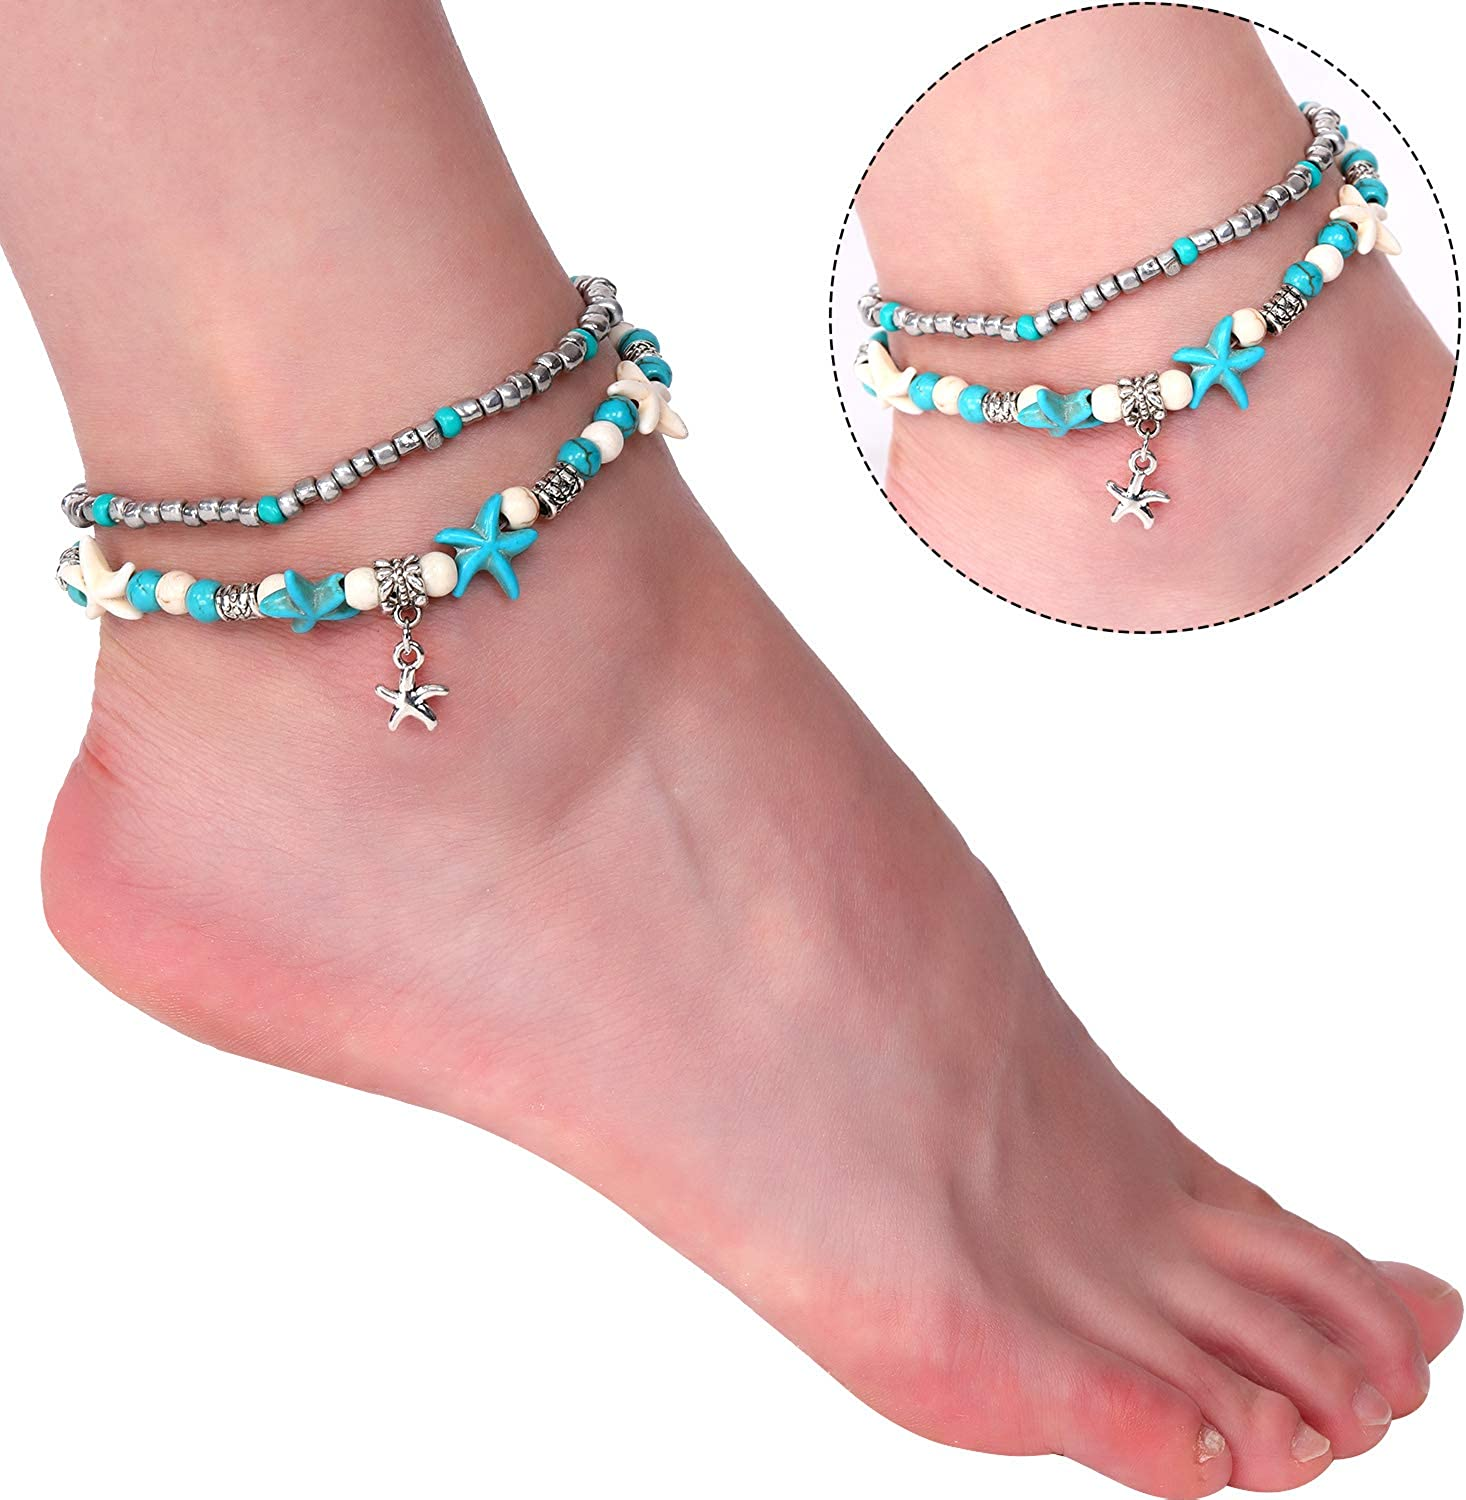 3 Pieces Beach Anklets Bracelets Turtle Ankle Chains Handmade Boho Layered Rope Anklets Jewelry for Women Girls Style 2